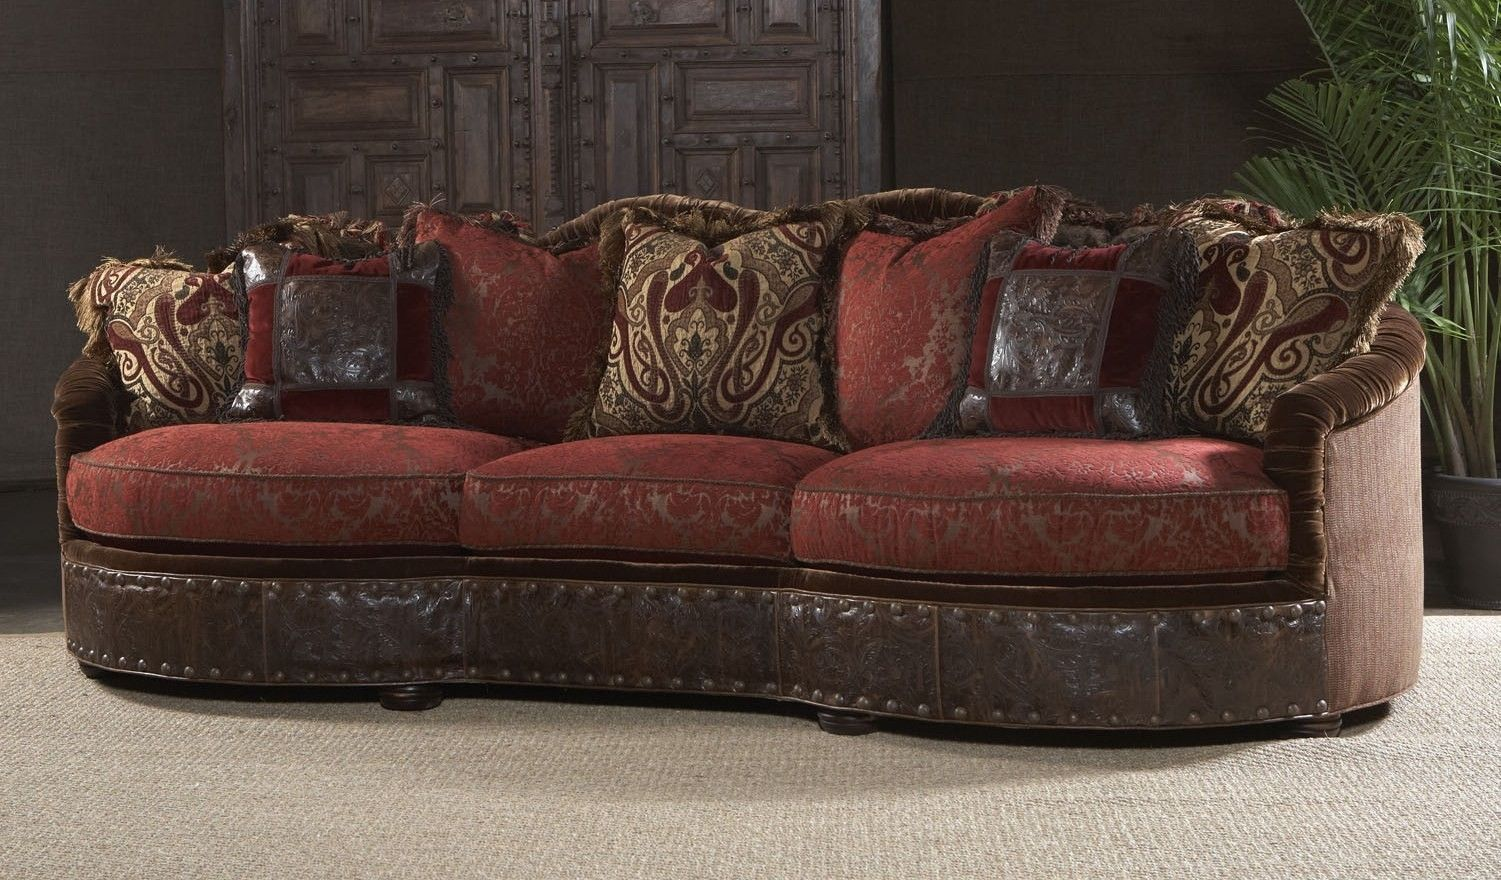 Hand Crafted Luxury Furniture Sofa Couch And Decorative